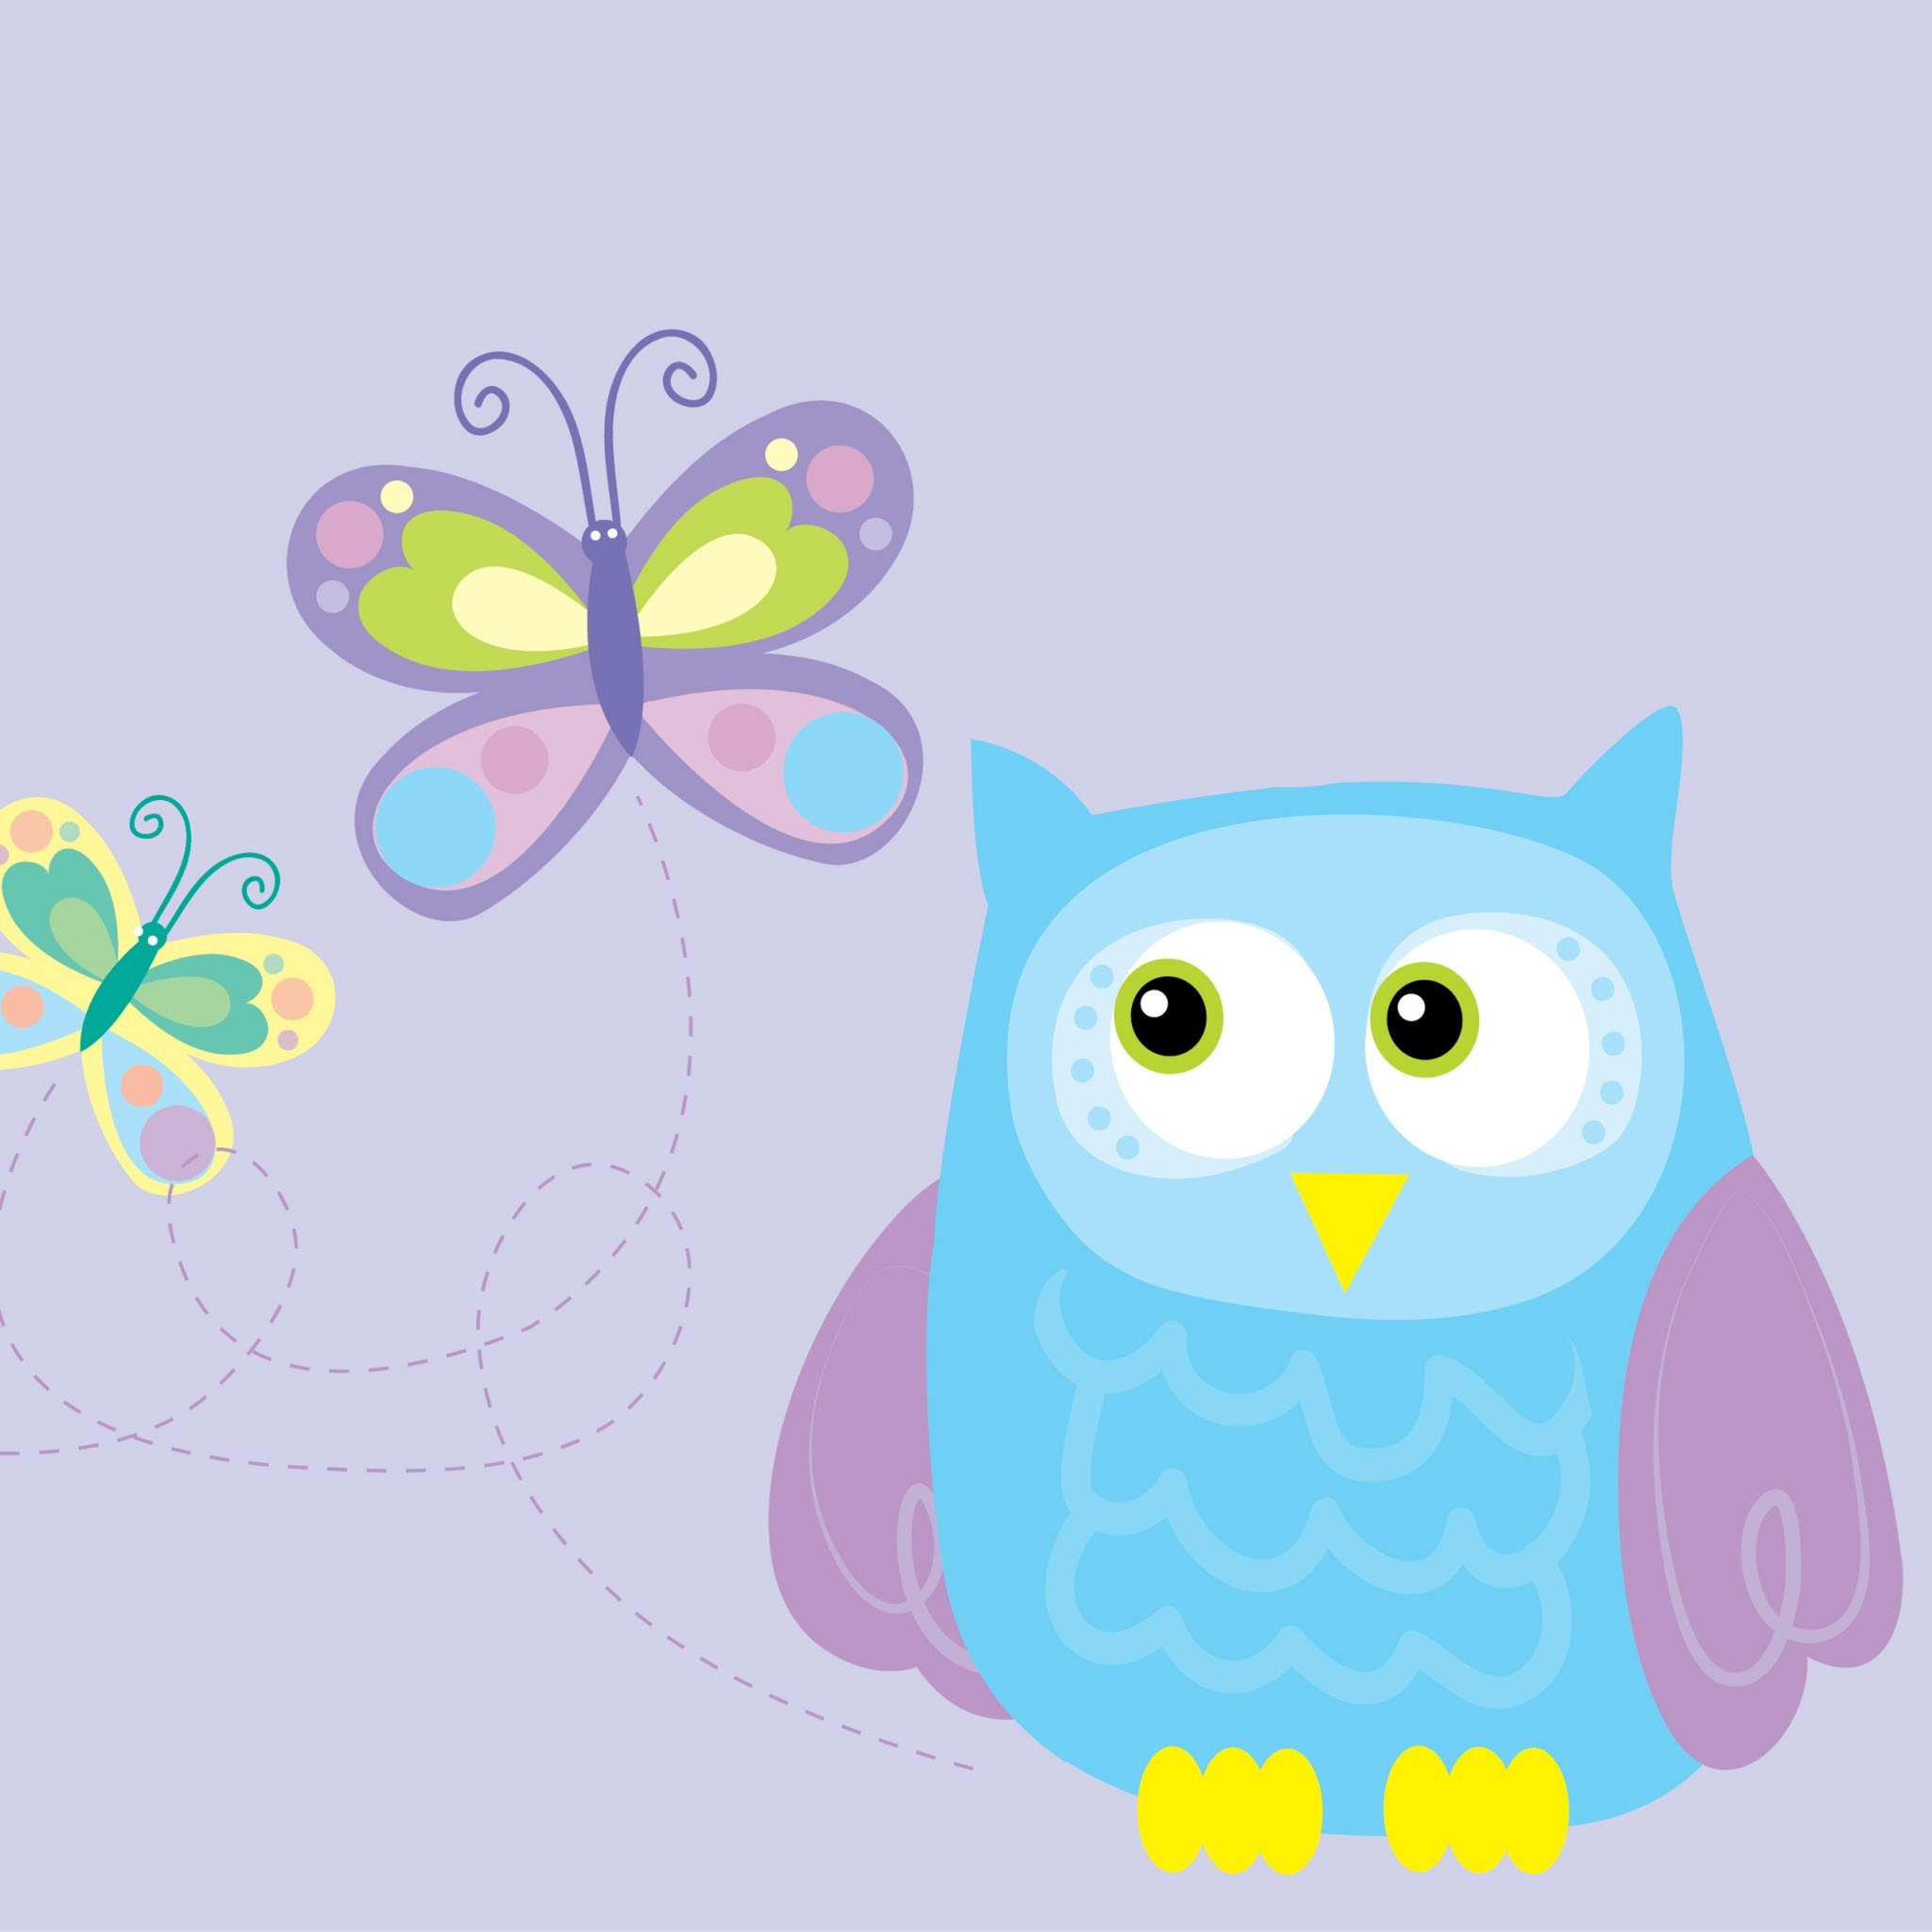 Cute Cartoon Owl Wallpaper 54 Images